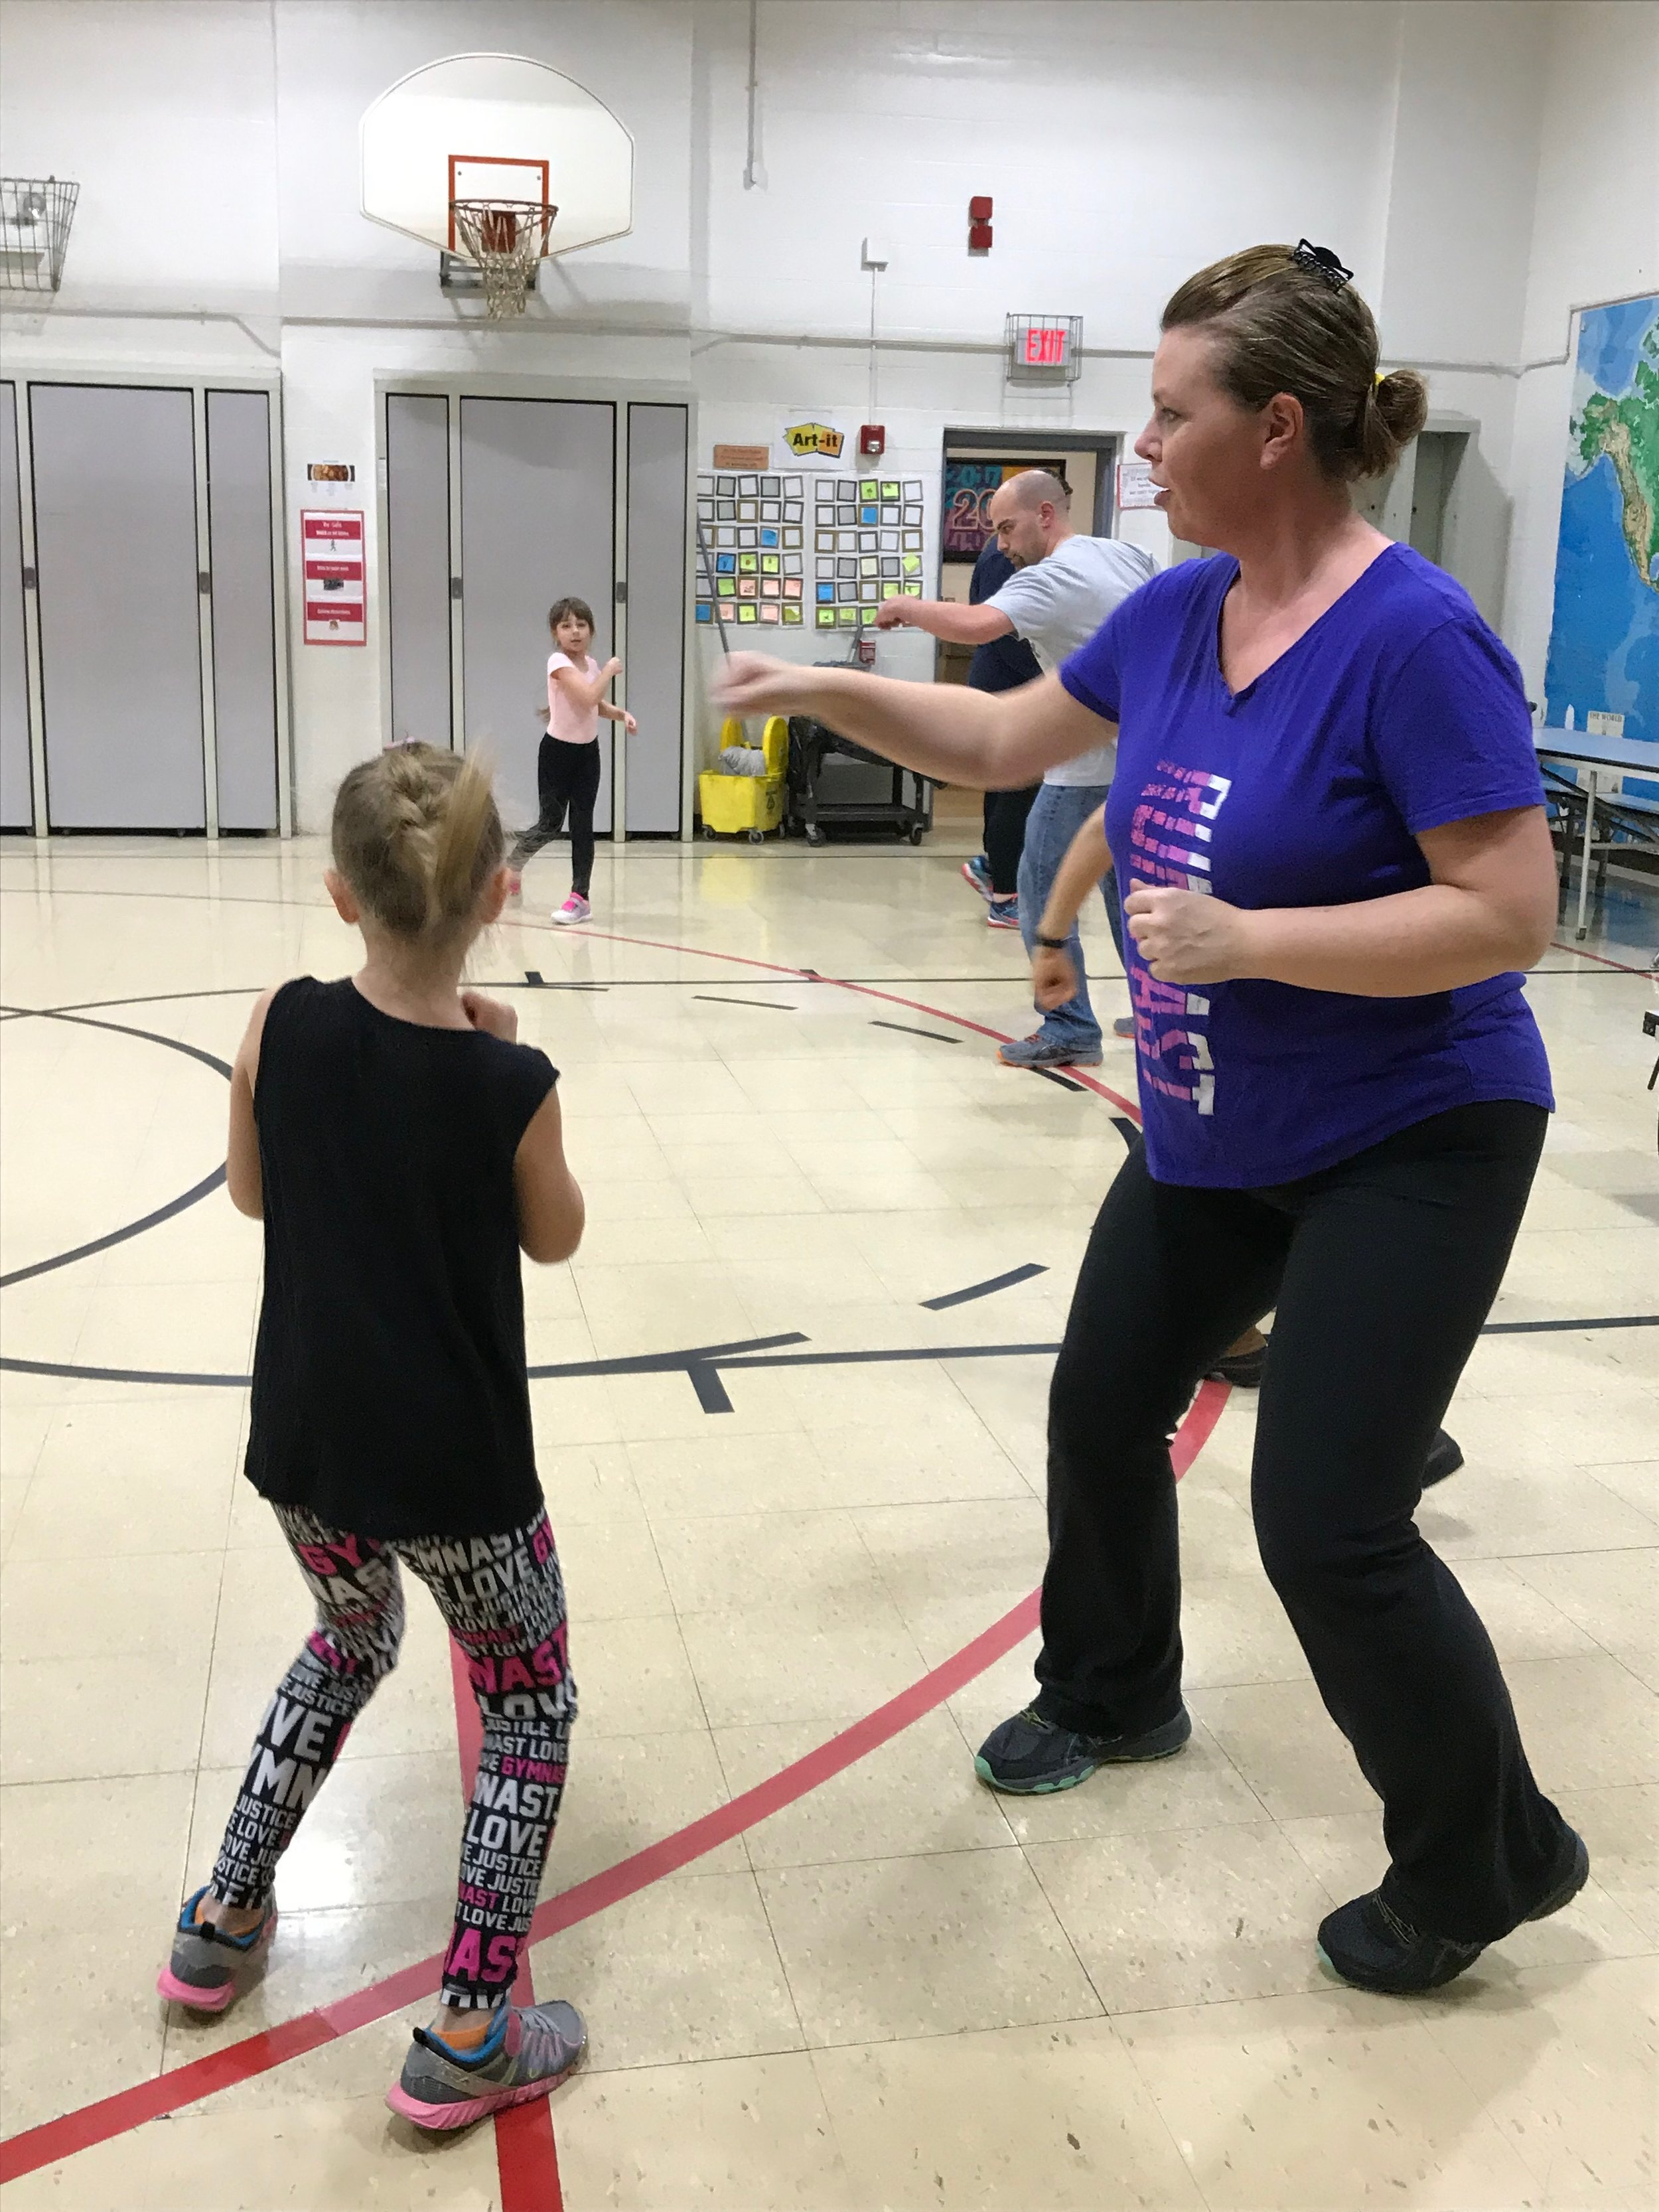 Families rotated through 3 fitness classes. Families kickboxing together.